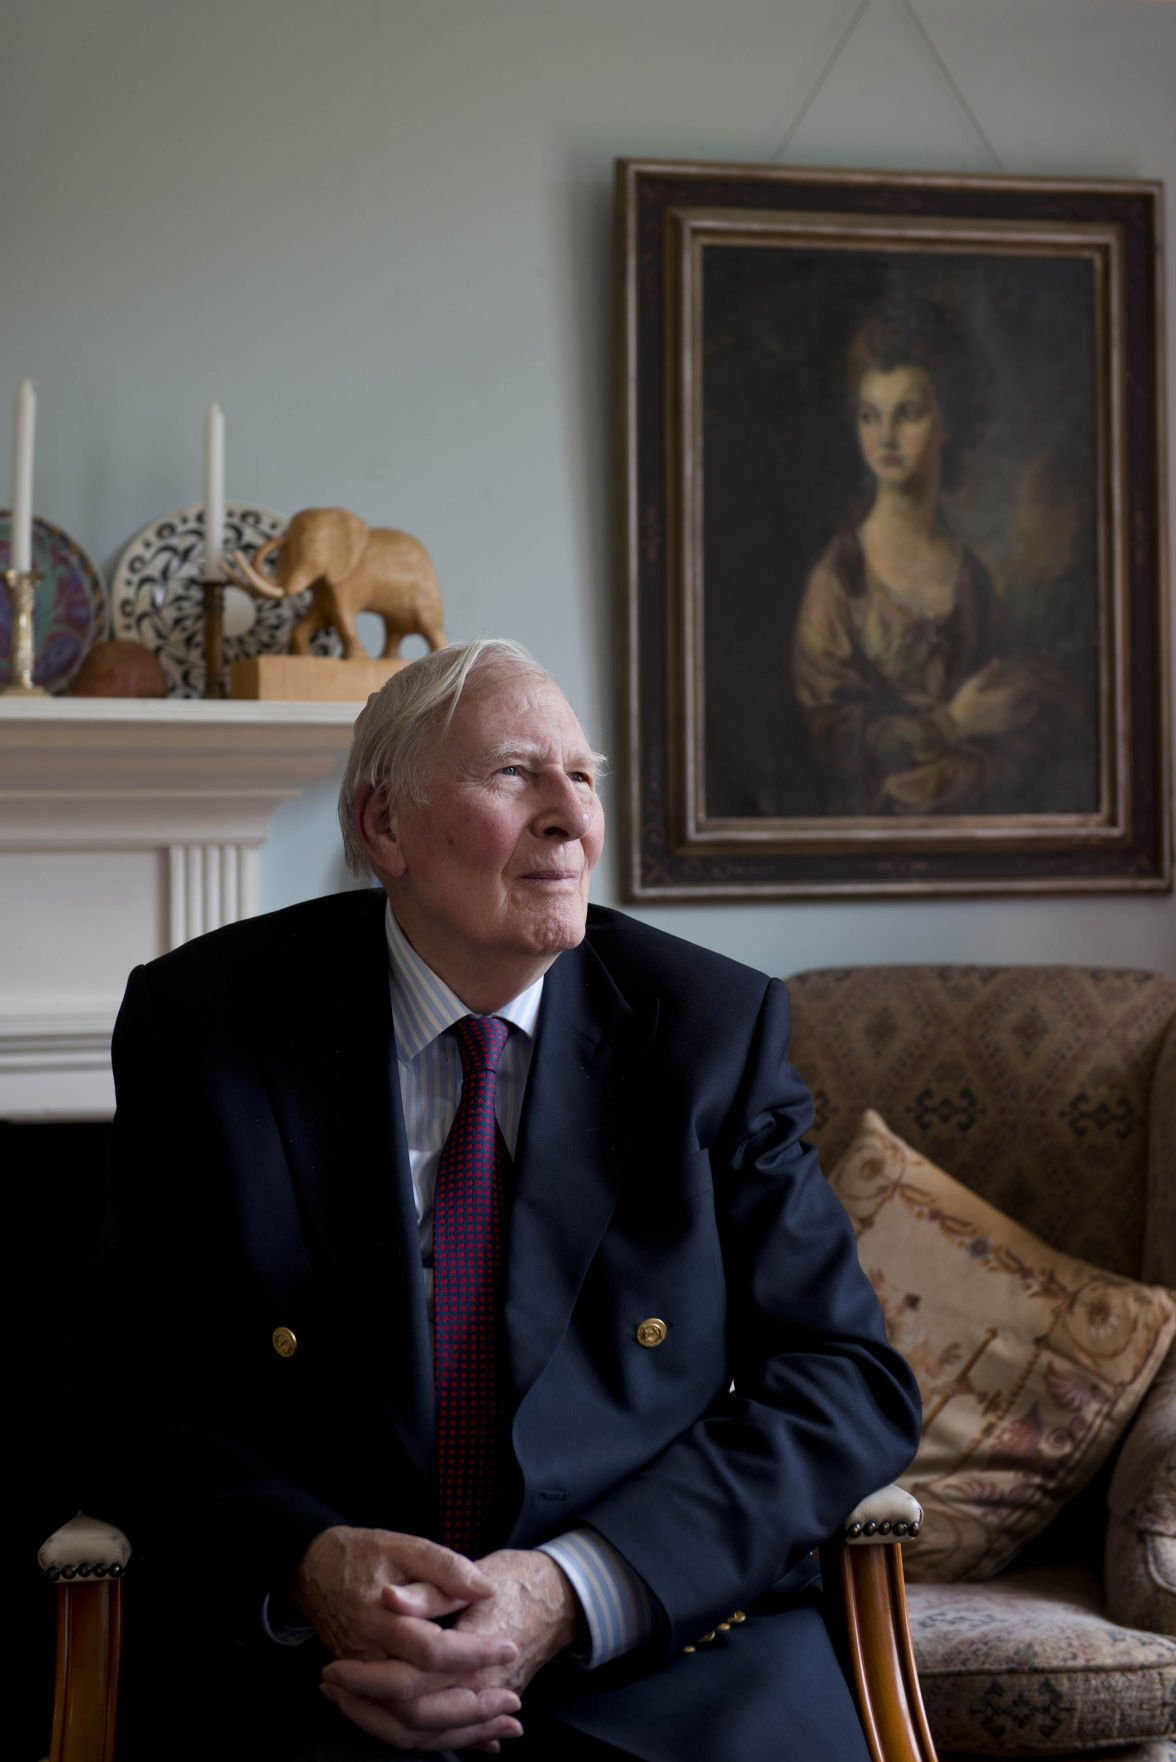 Roger Bannister at his home in Oxford, England.